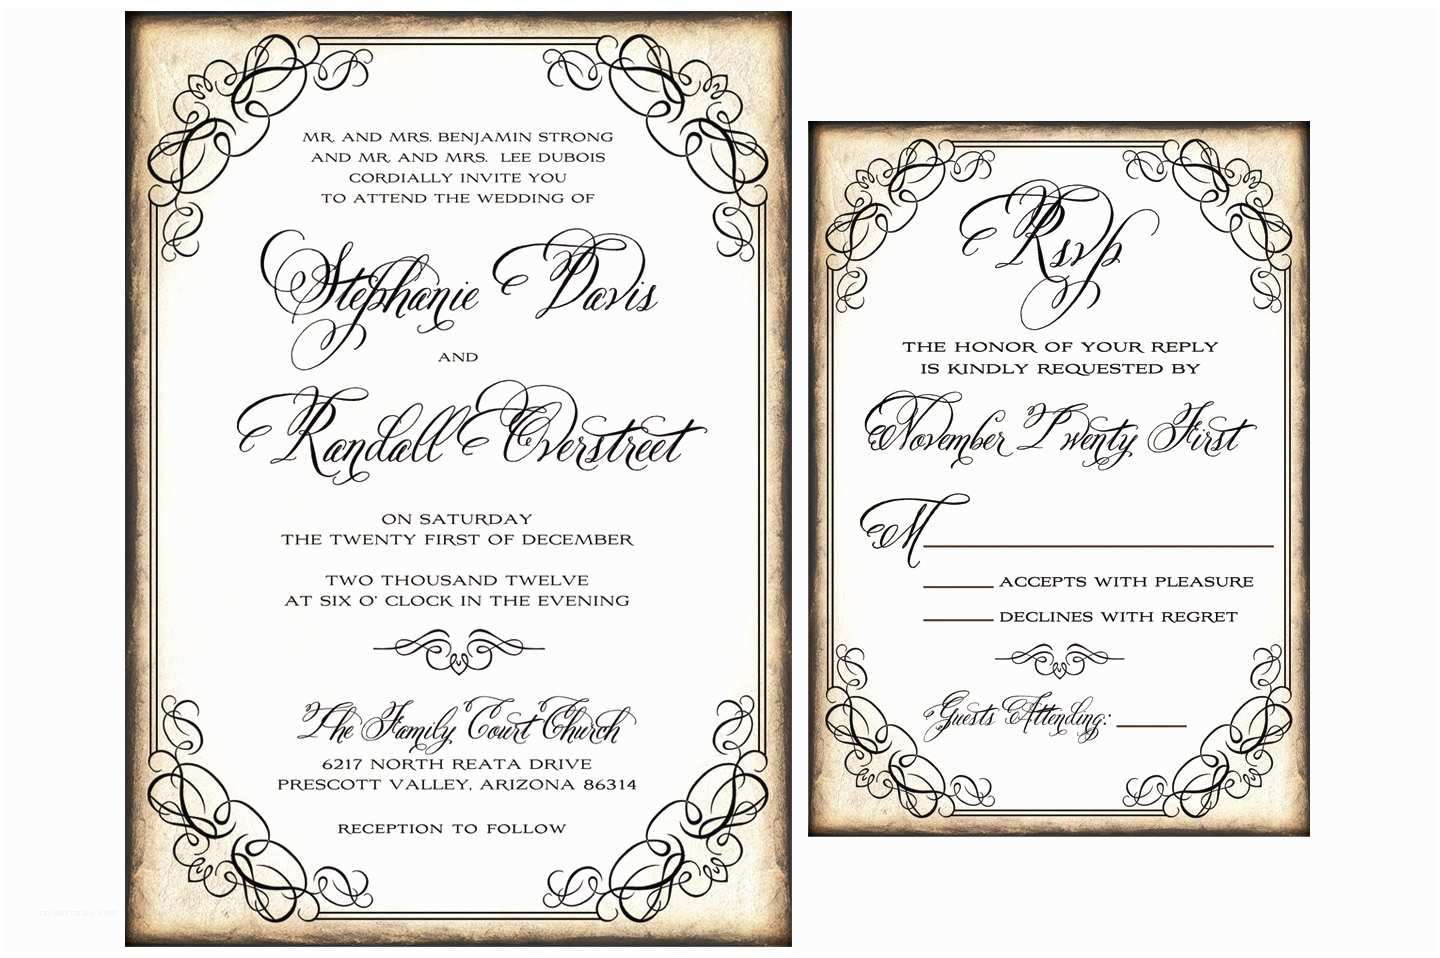 Wedding Invitation Sample Wording Wedding Structurewedding Structure